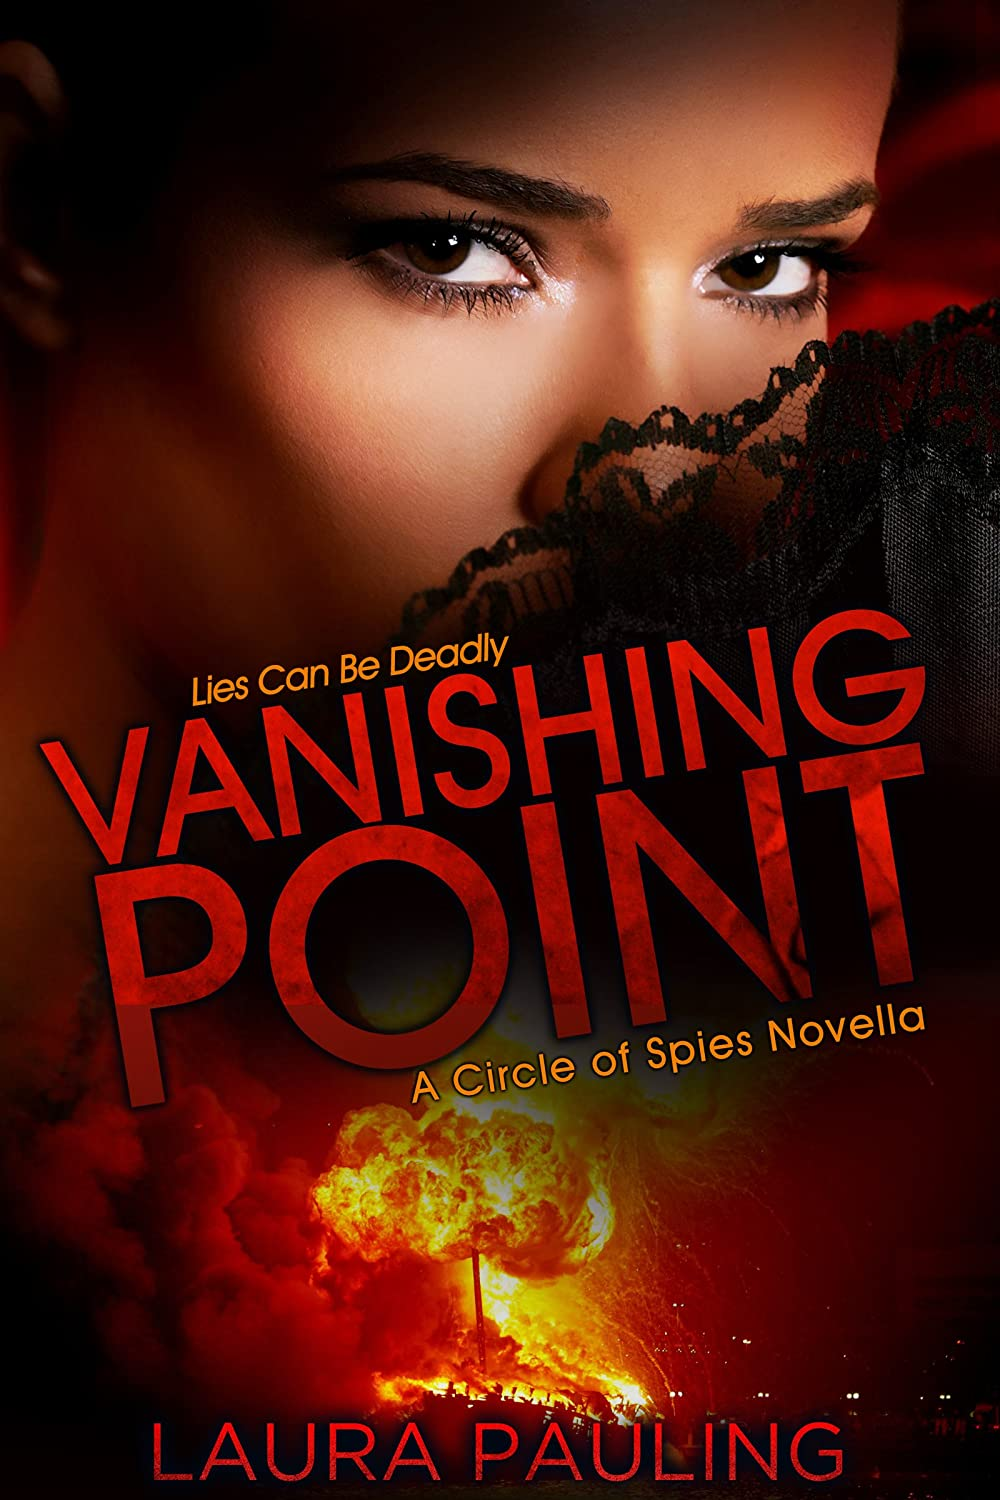 Vanishing Point (Circle of Spies Novella)